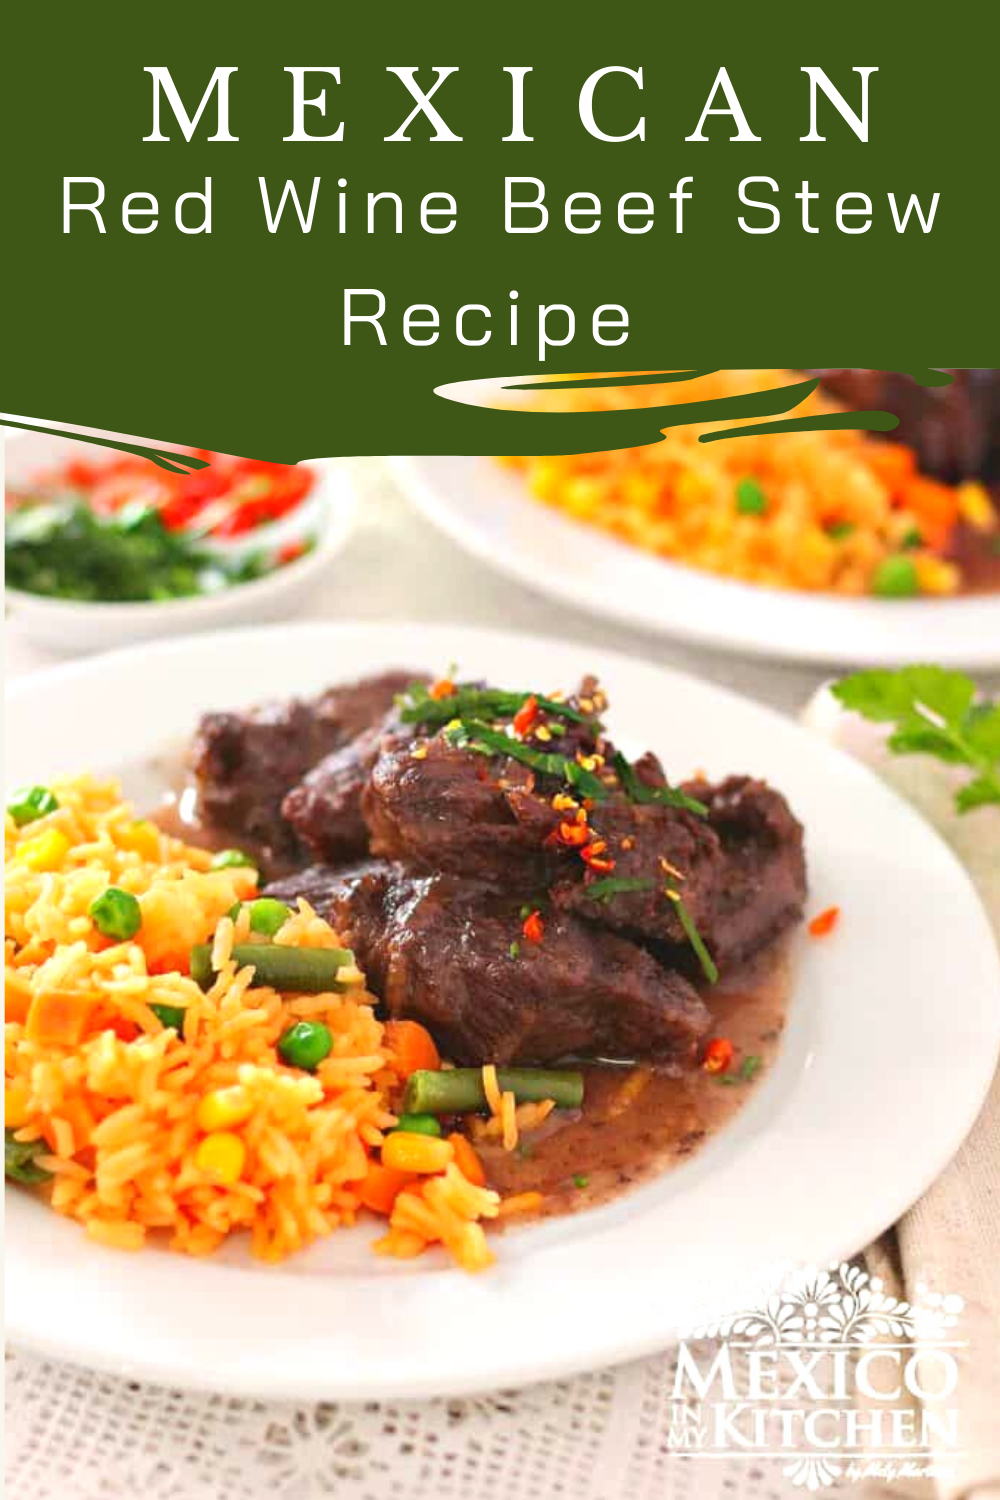 Red Wine Beef Stew Super Easy Recipe You Will Love It Recipe Beef Stew Recipe Red Wine Beef Stew Recipe Easy Beef Stew Recipe